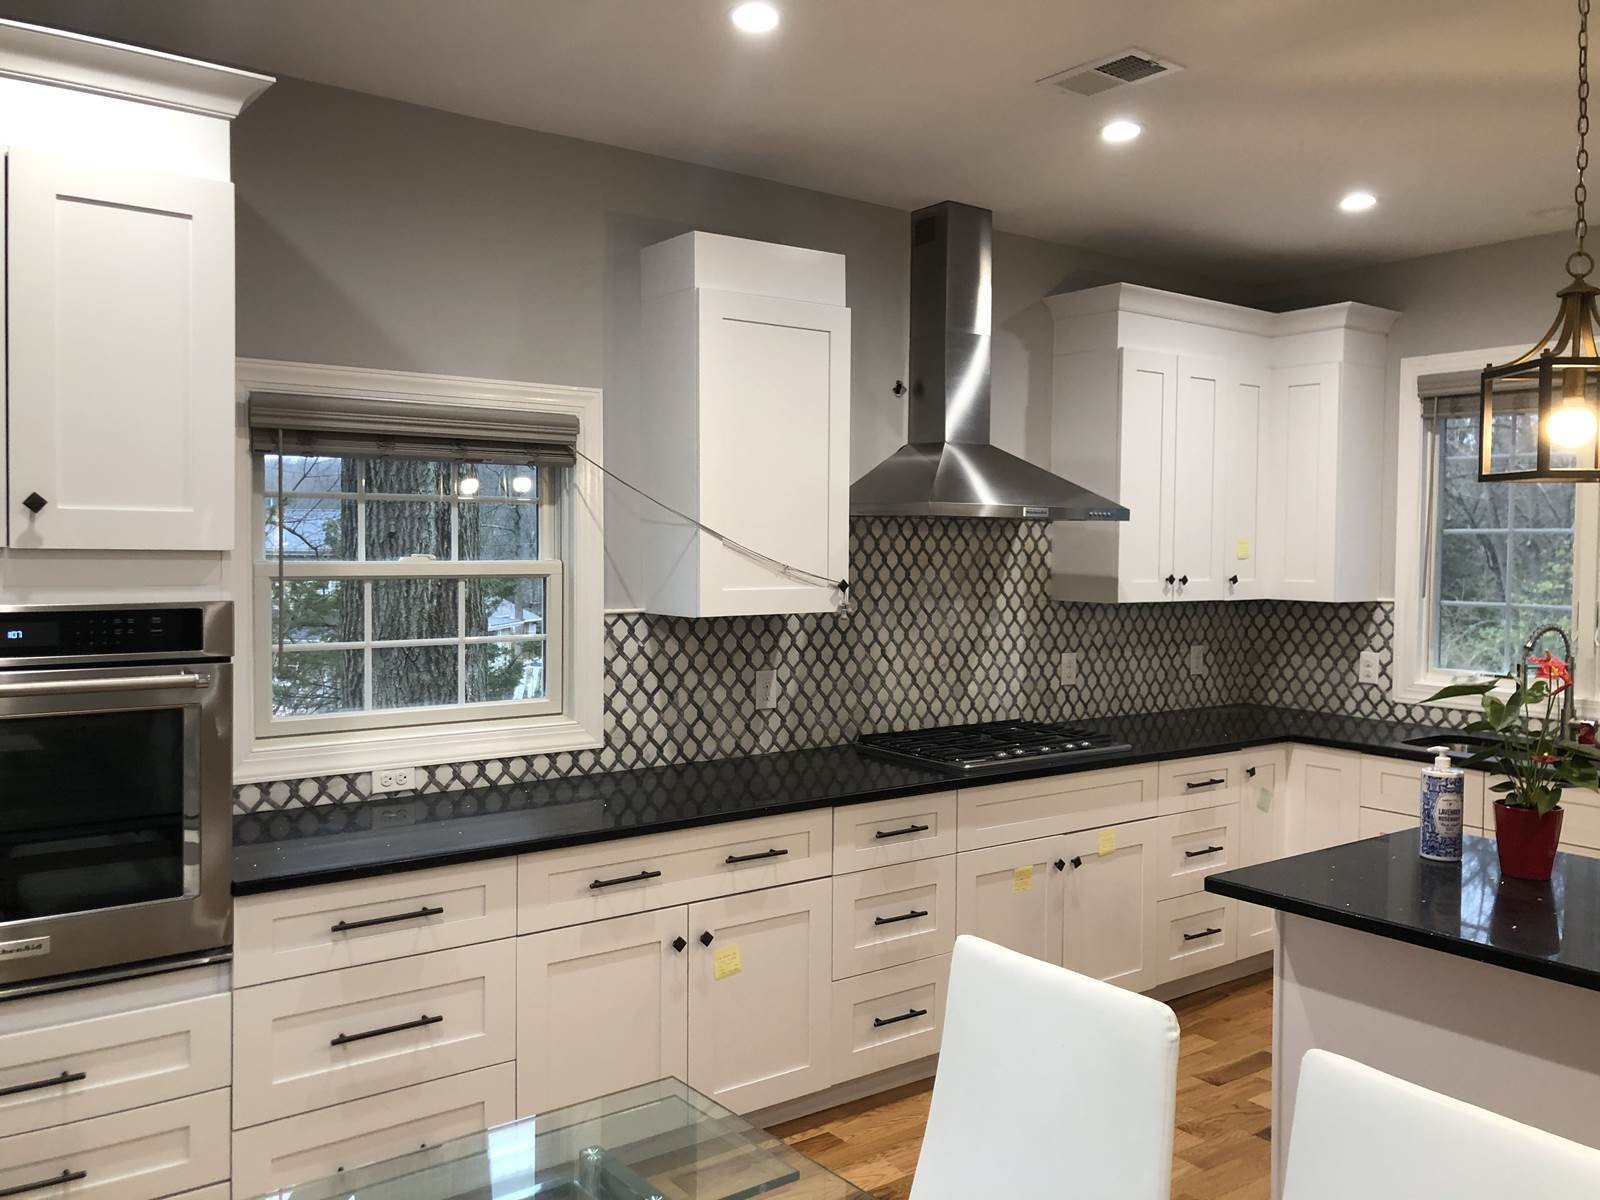 Kitchen Backsplash NJ Basking Ridge 03